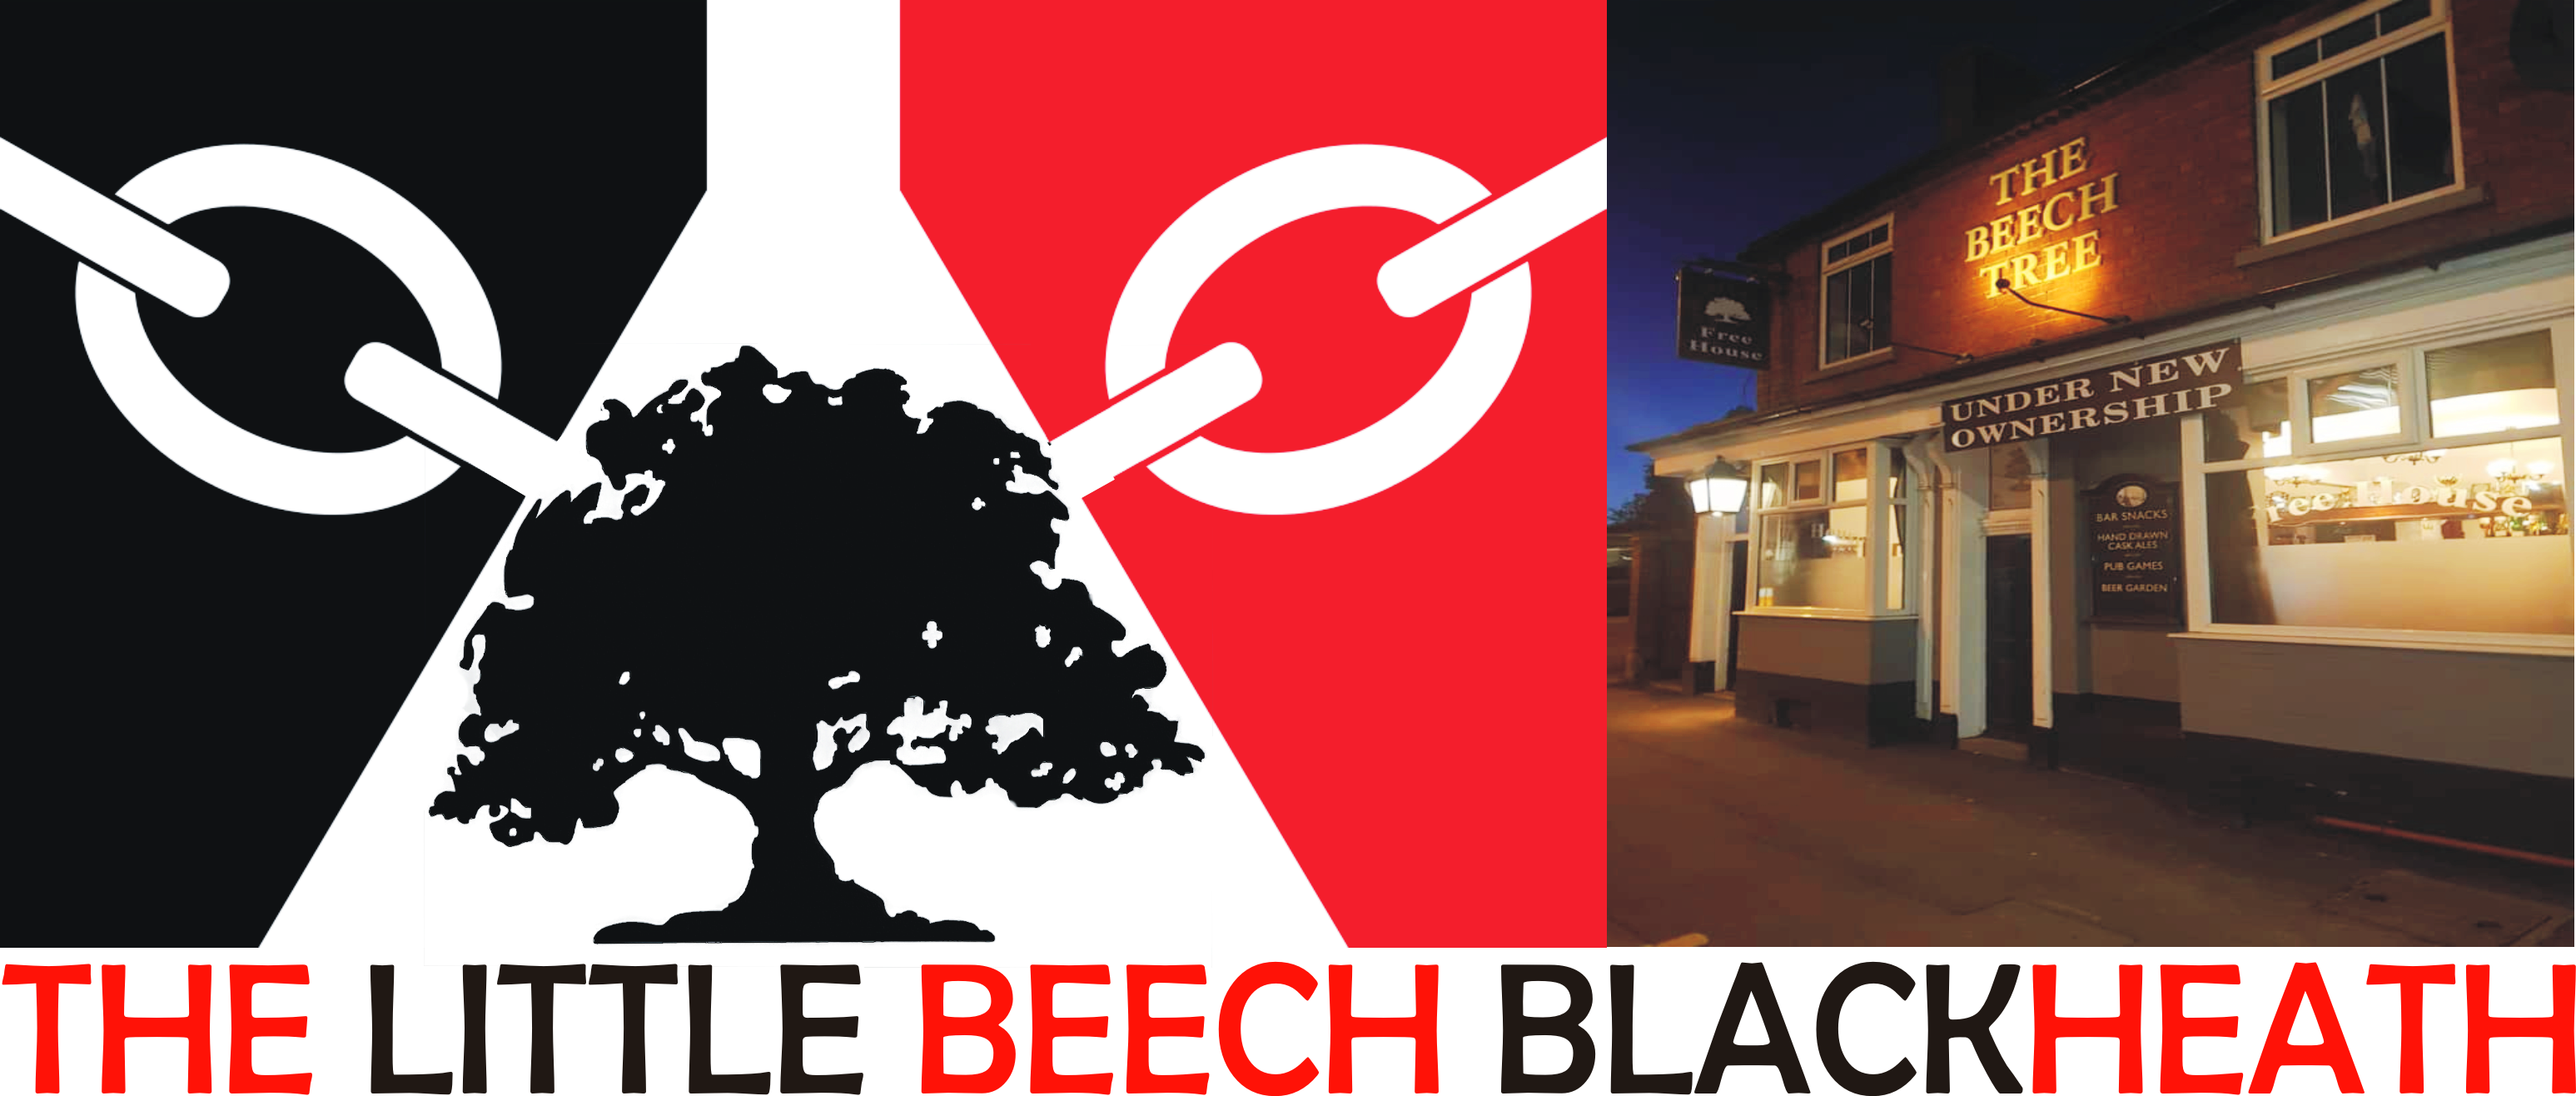 The-Little-Beech-Black-Country-Flag